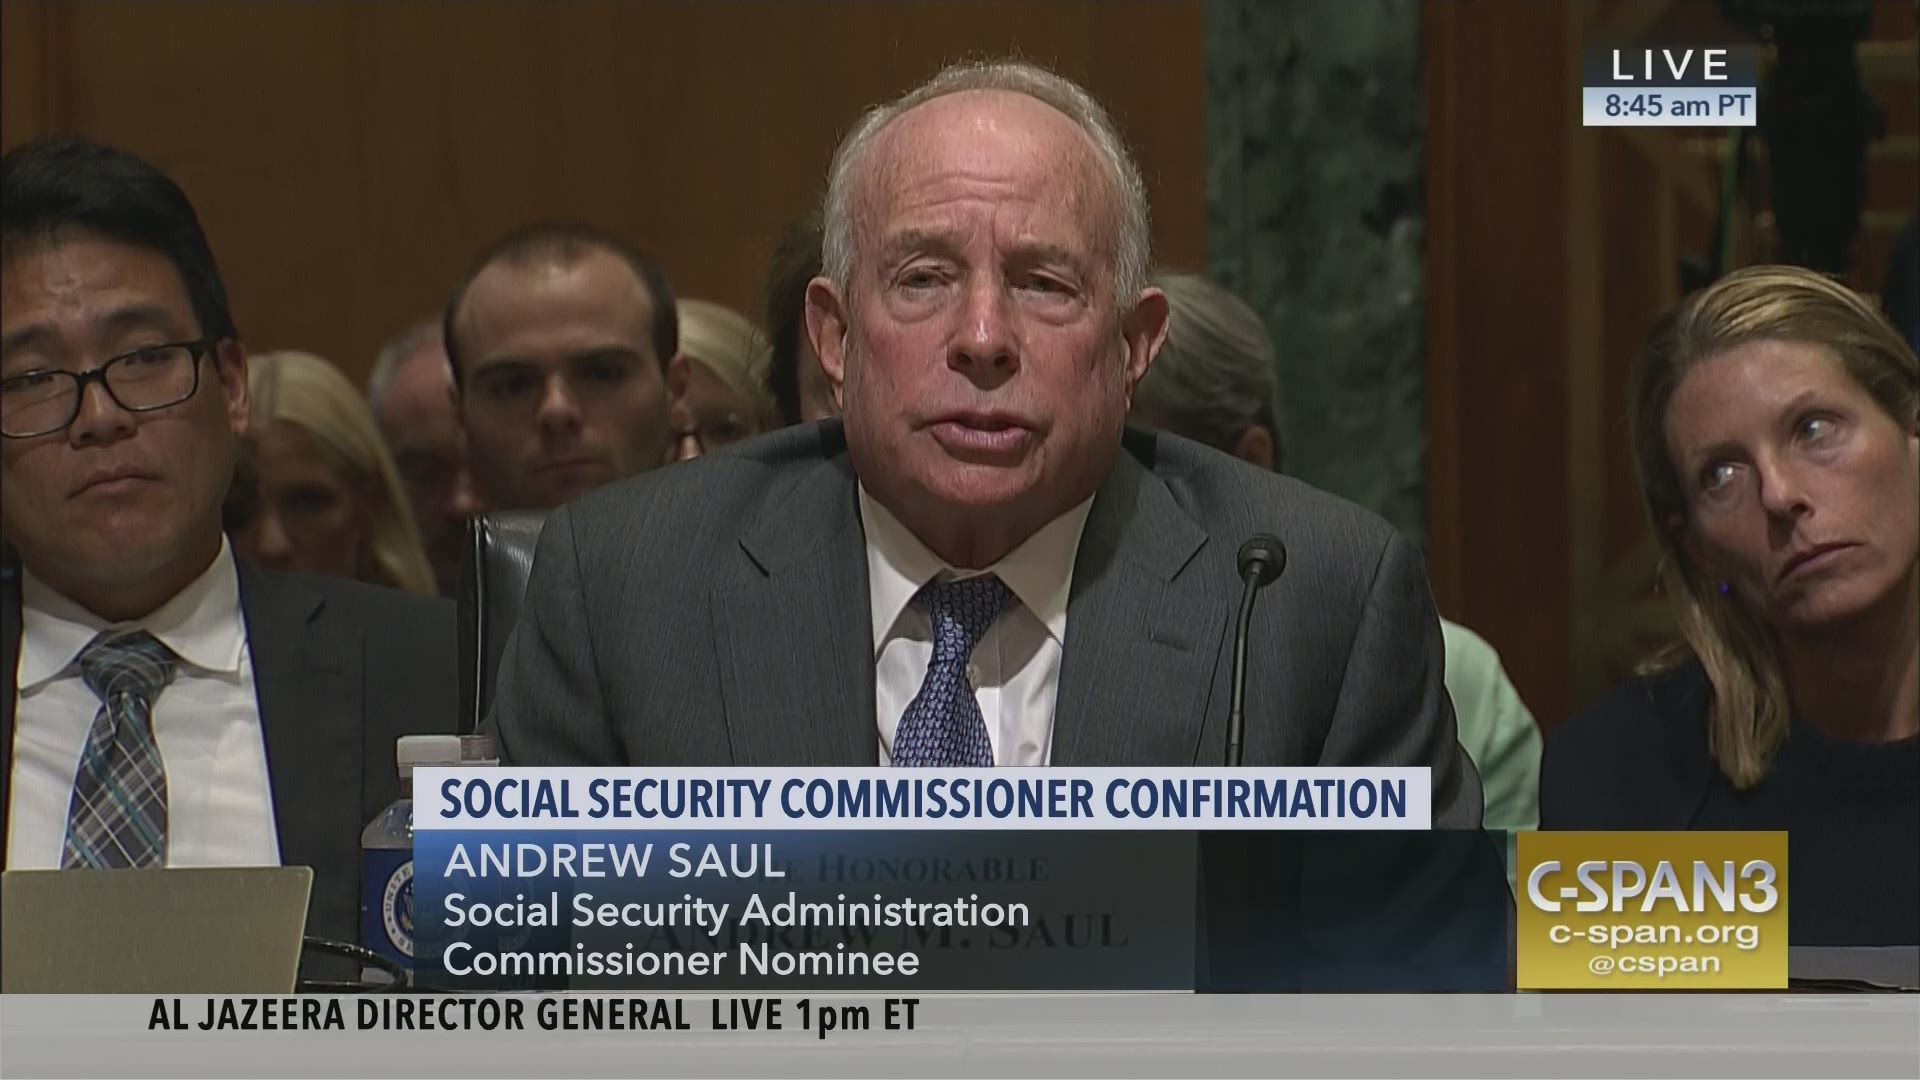 Members of Congress Push for Social Security Fix to Ensure Equality for All